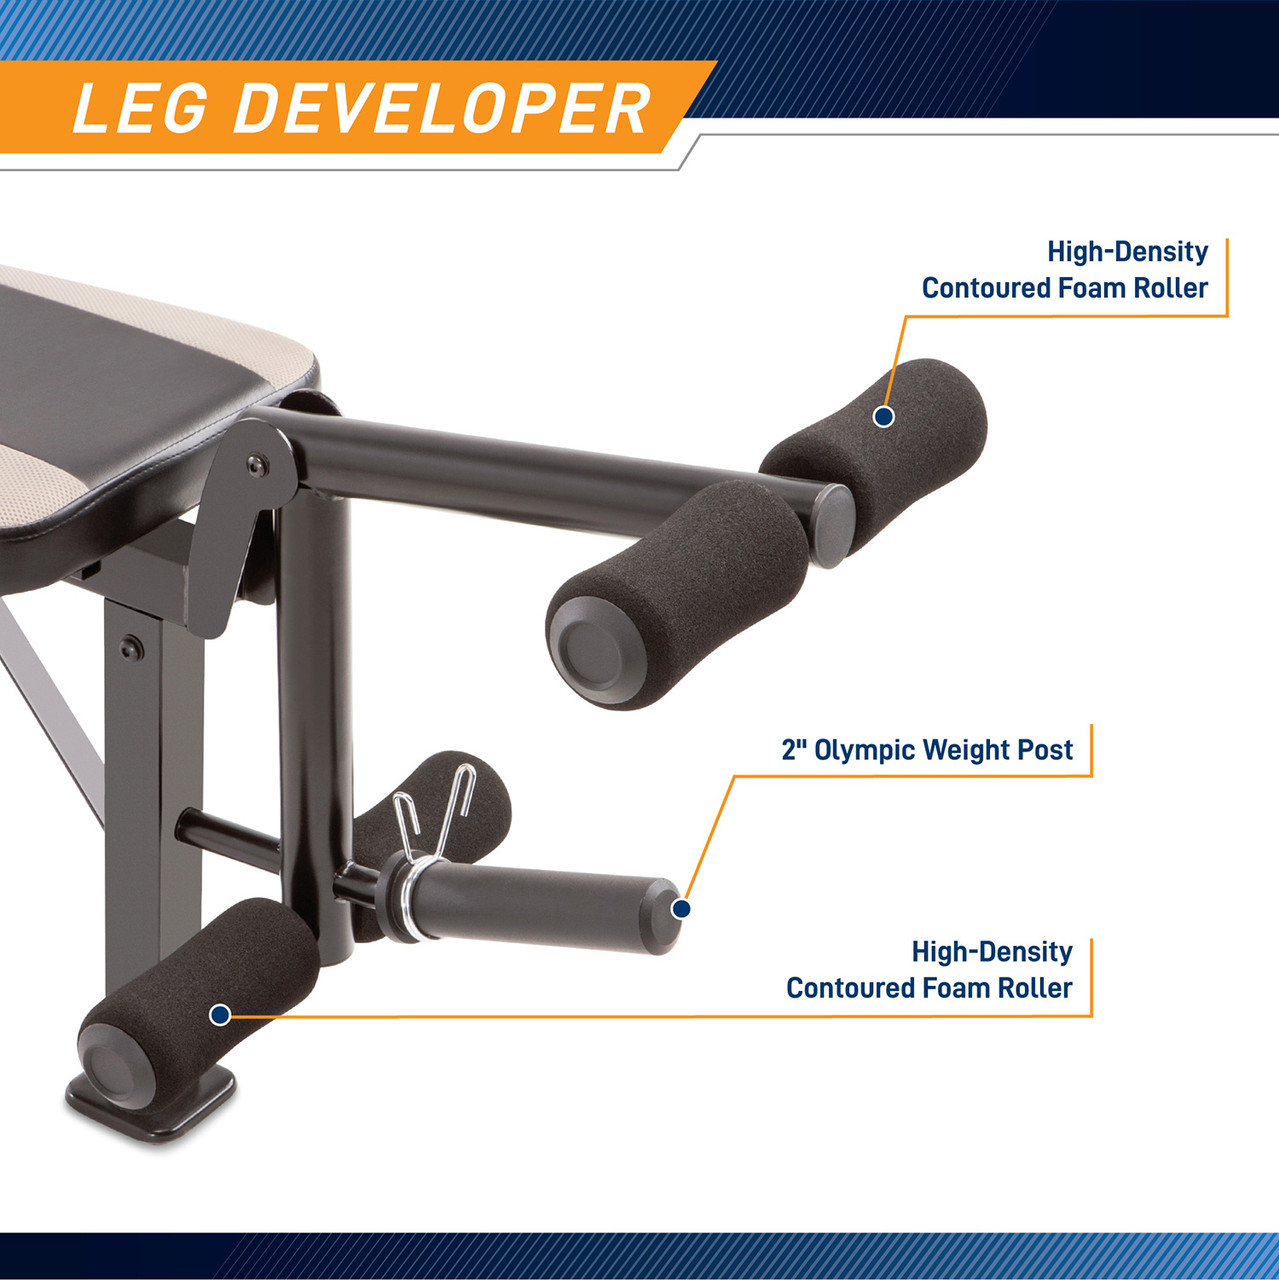 Made of 14-gauge steel tube reinforced with powder coating. This bench's structure won't collapse under your weight. Its stabilized design, foam roller pads, thick foam, and boxed upholstery provide ideal support and comfort